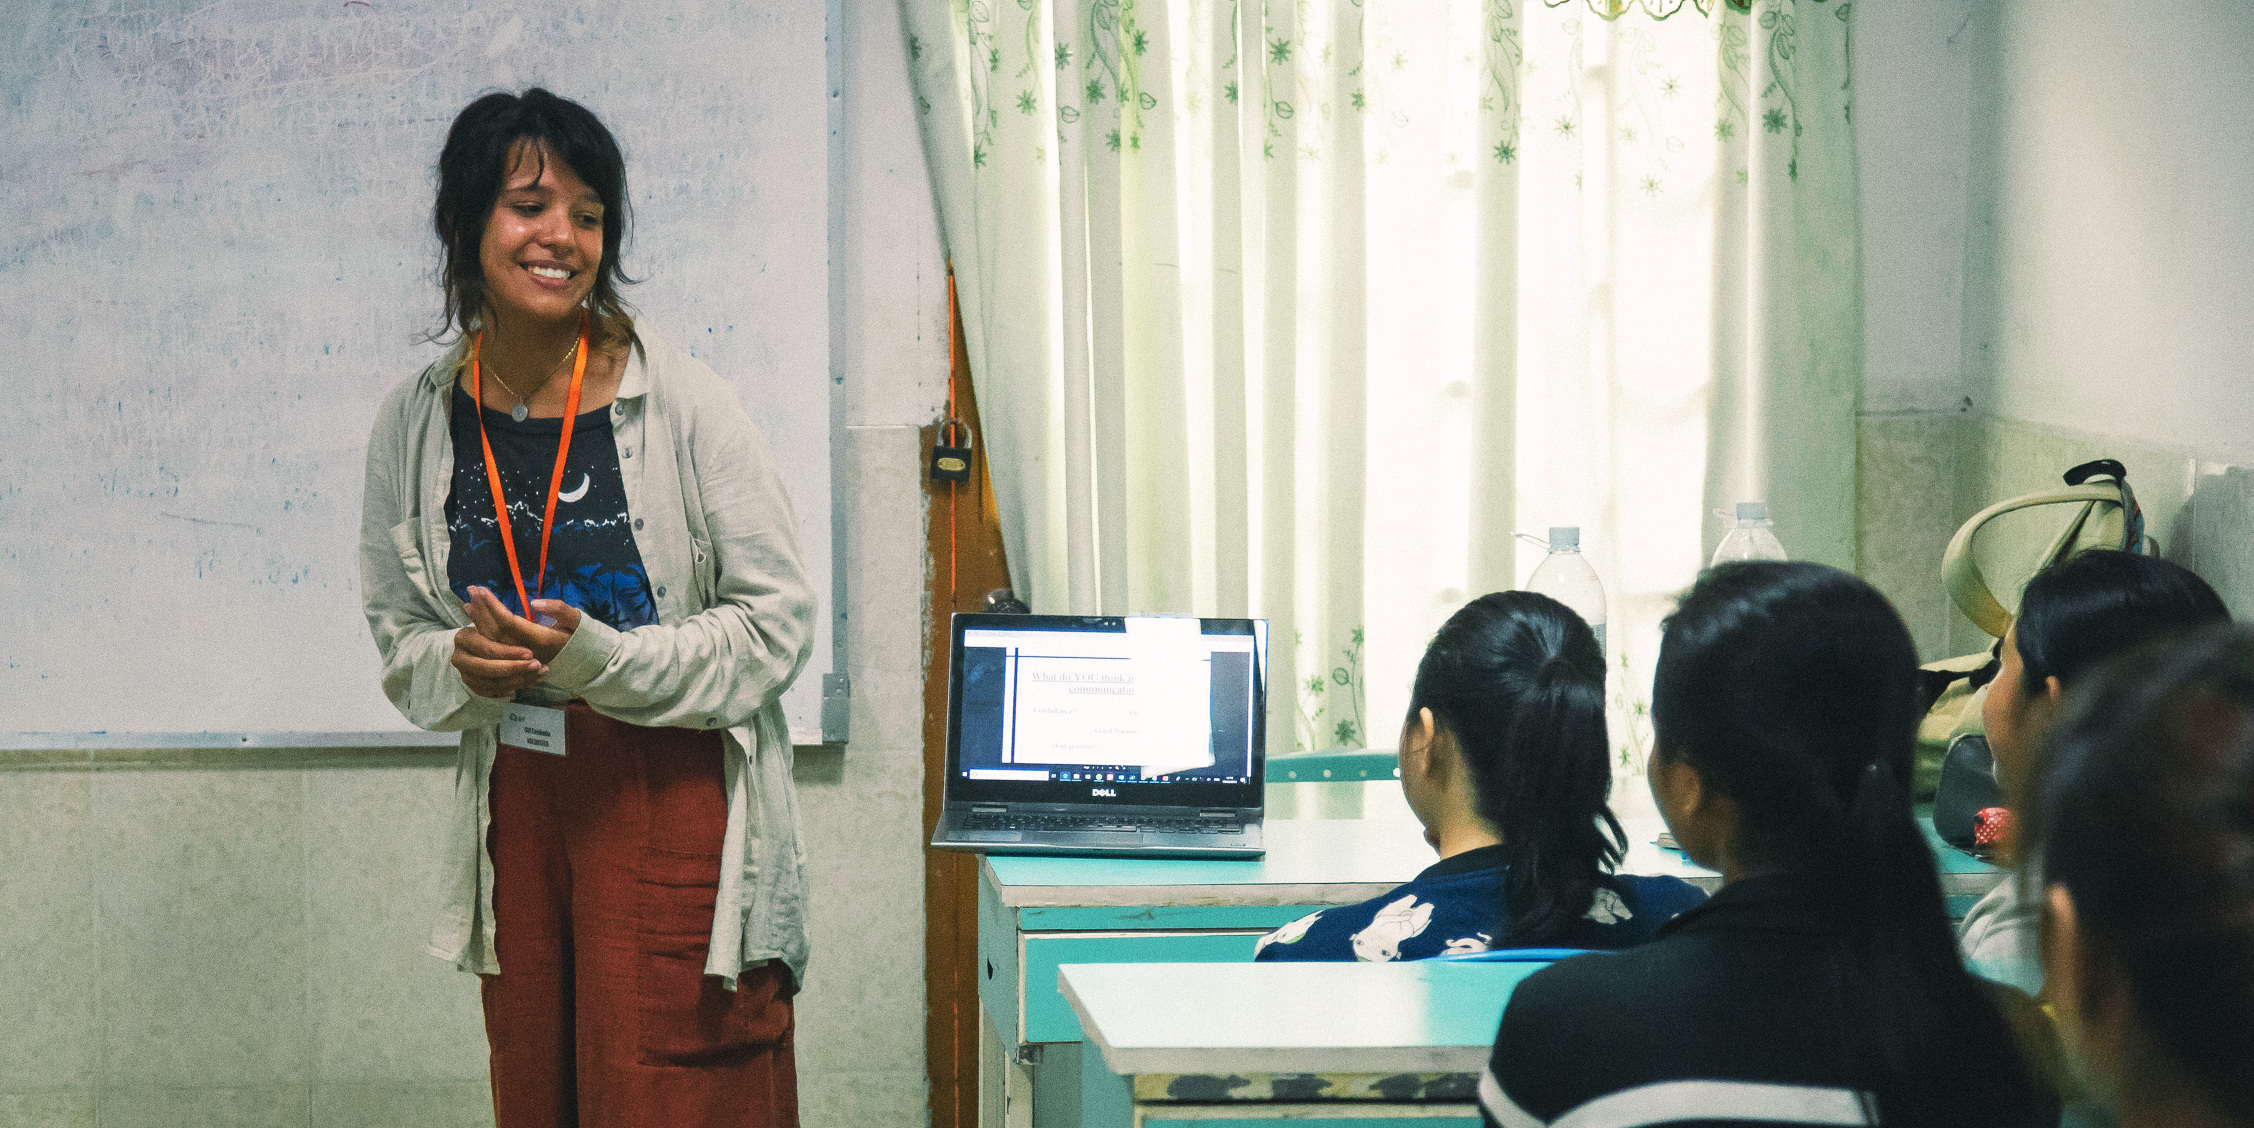 A woman leads an English lesson while on a gap year program.